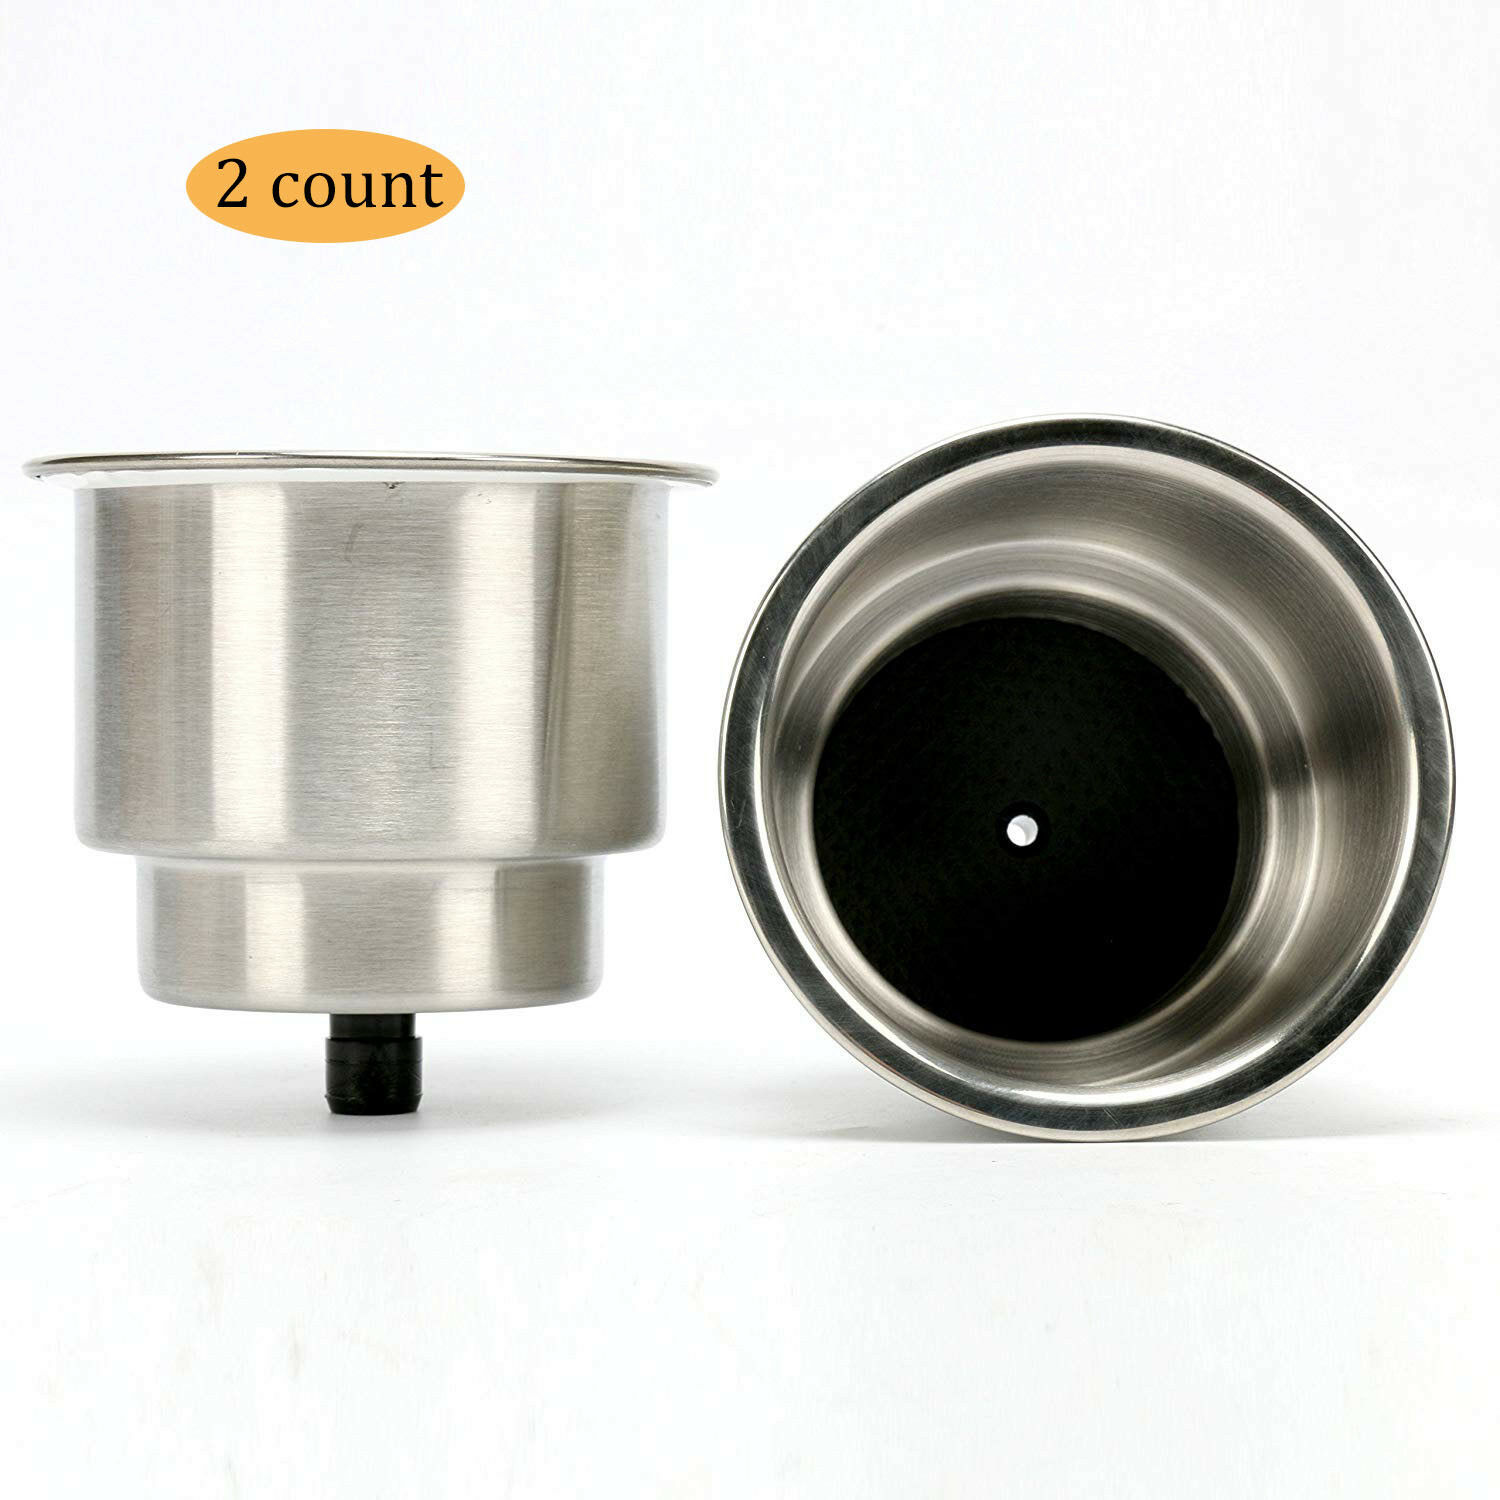 MYSPORT/_6 4pcs Stainless Steel Cup Drink Holder with Drain for Marine Boat RV Camper